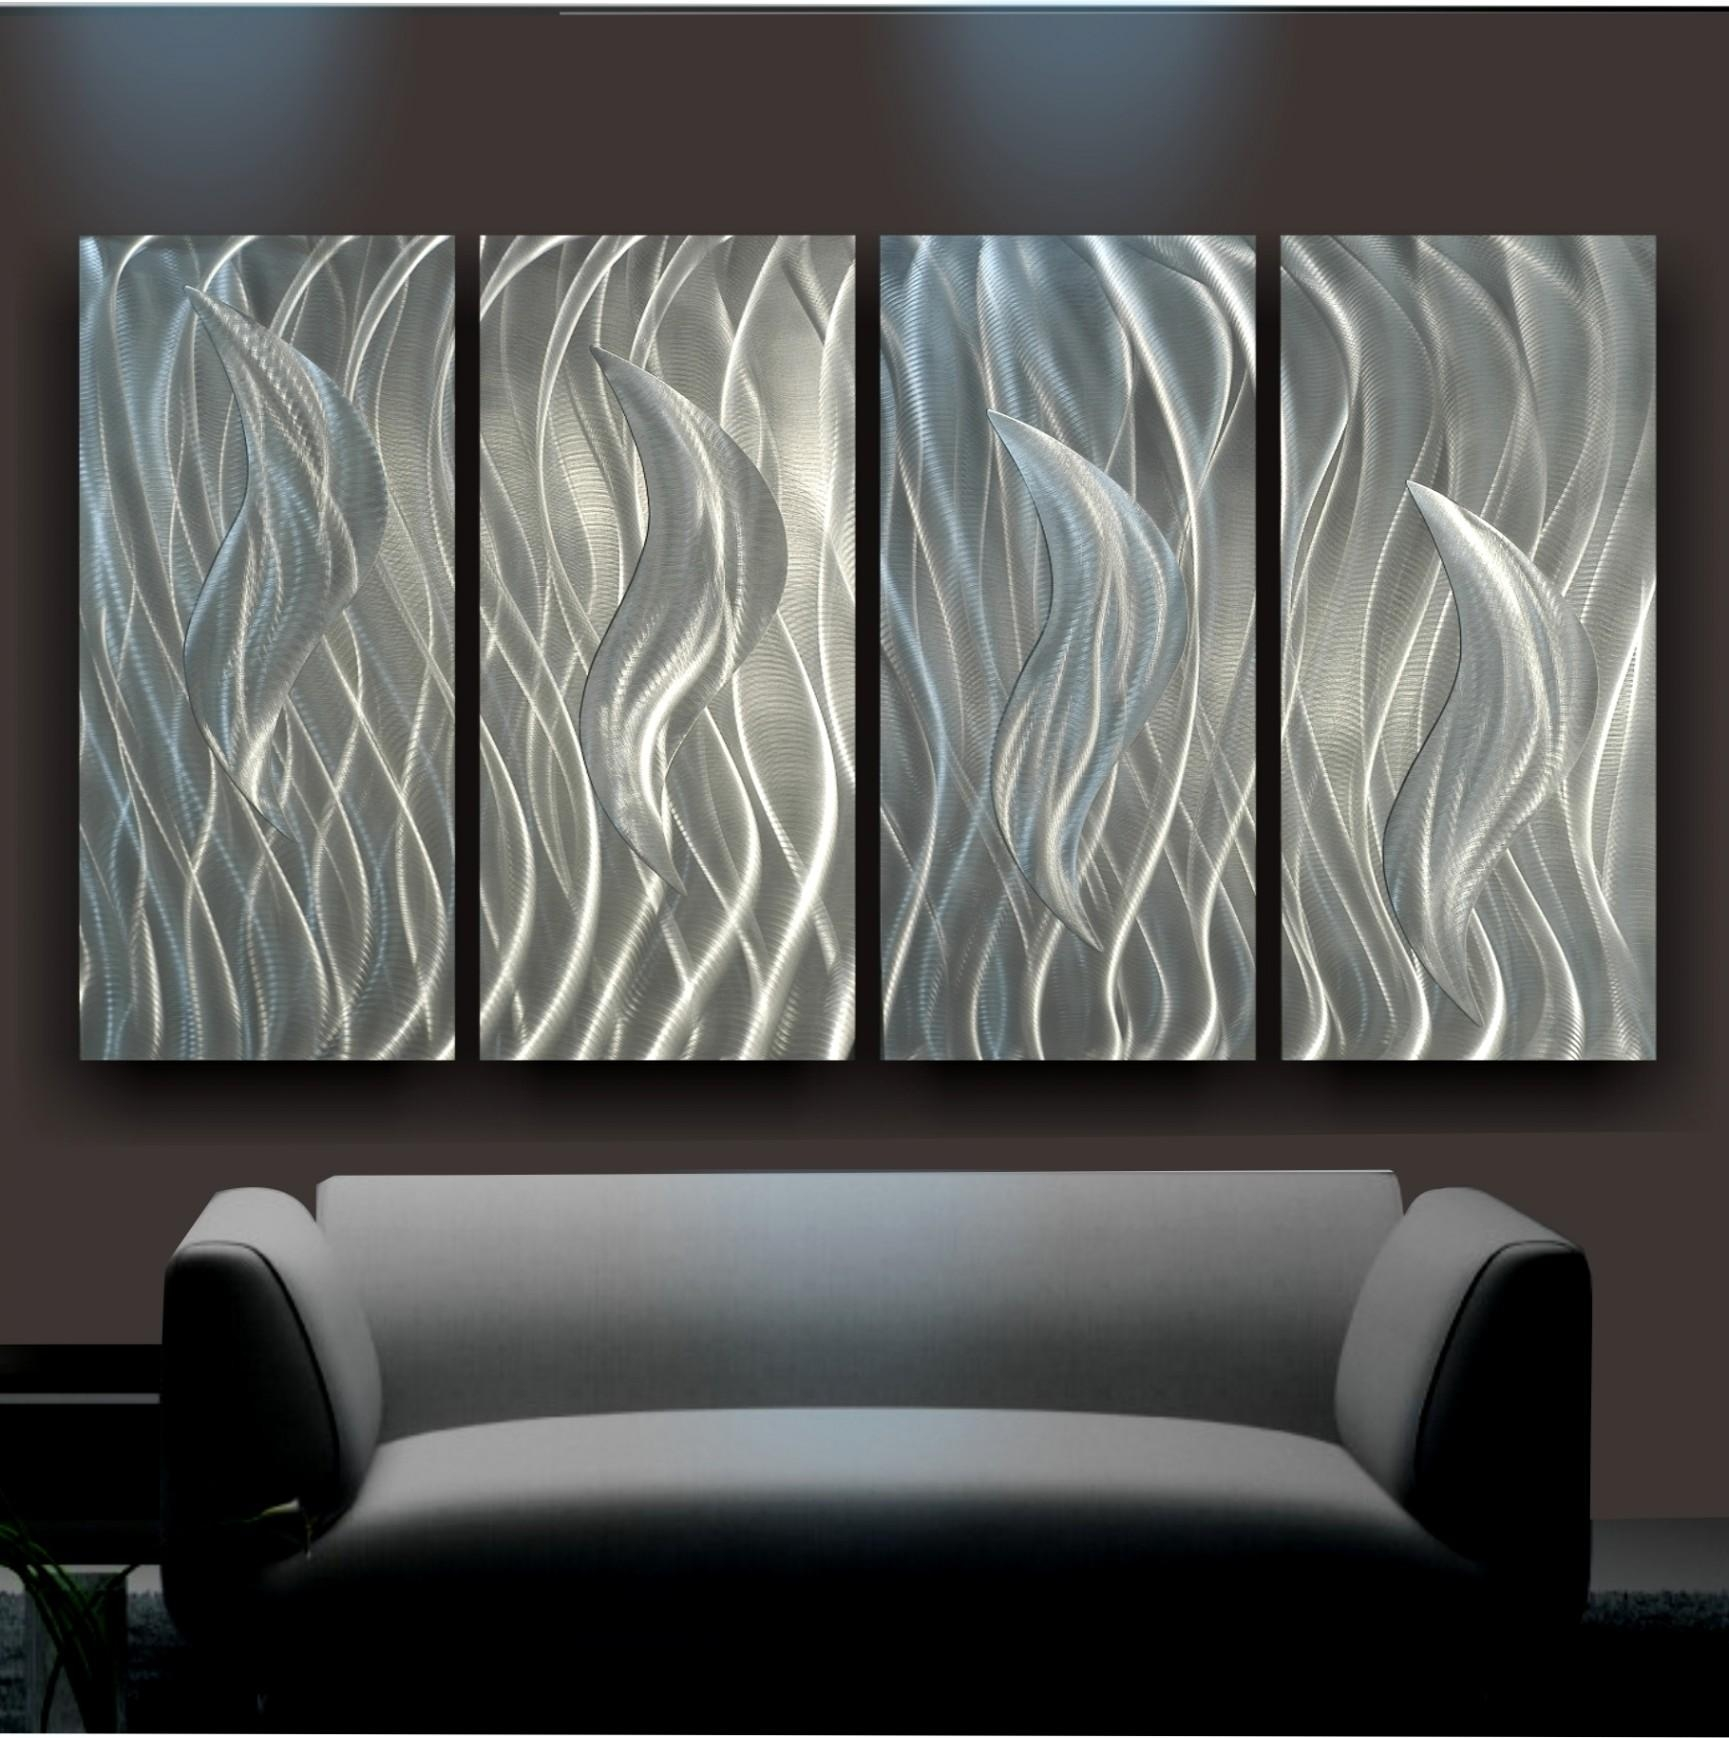 Best Of Unique Modern Wall Art And Decor Regarding Unique Modern Wall Art And Decor (Image 3 of 20)